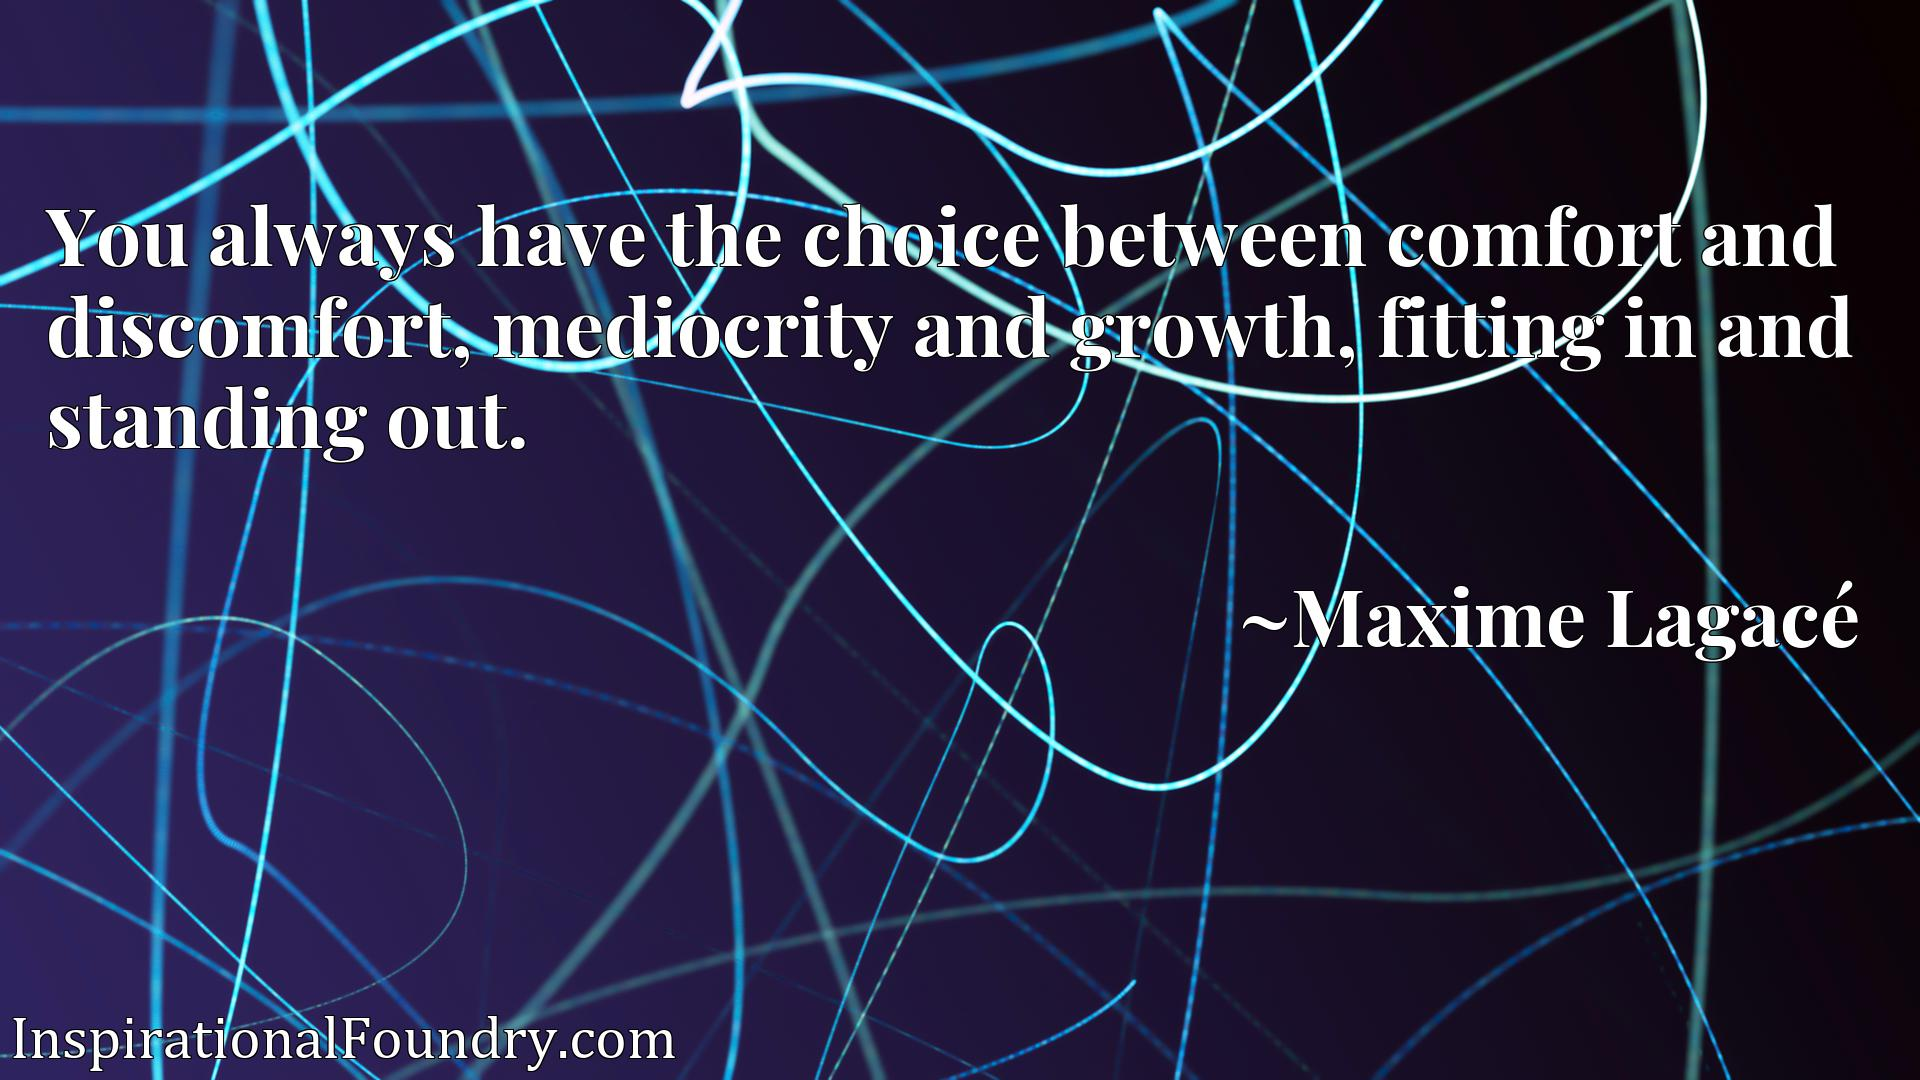 You always have the choice between comfort and discomfort, mediocrity and growth, fitting in and standing out.